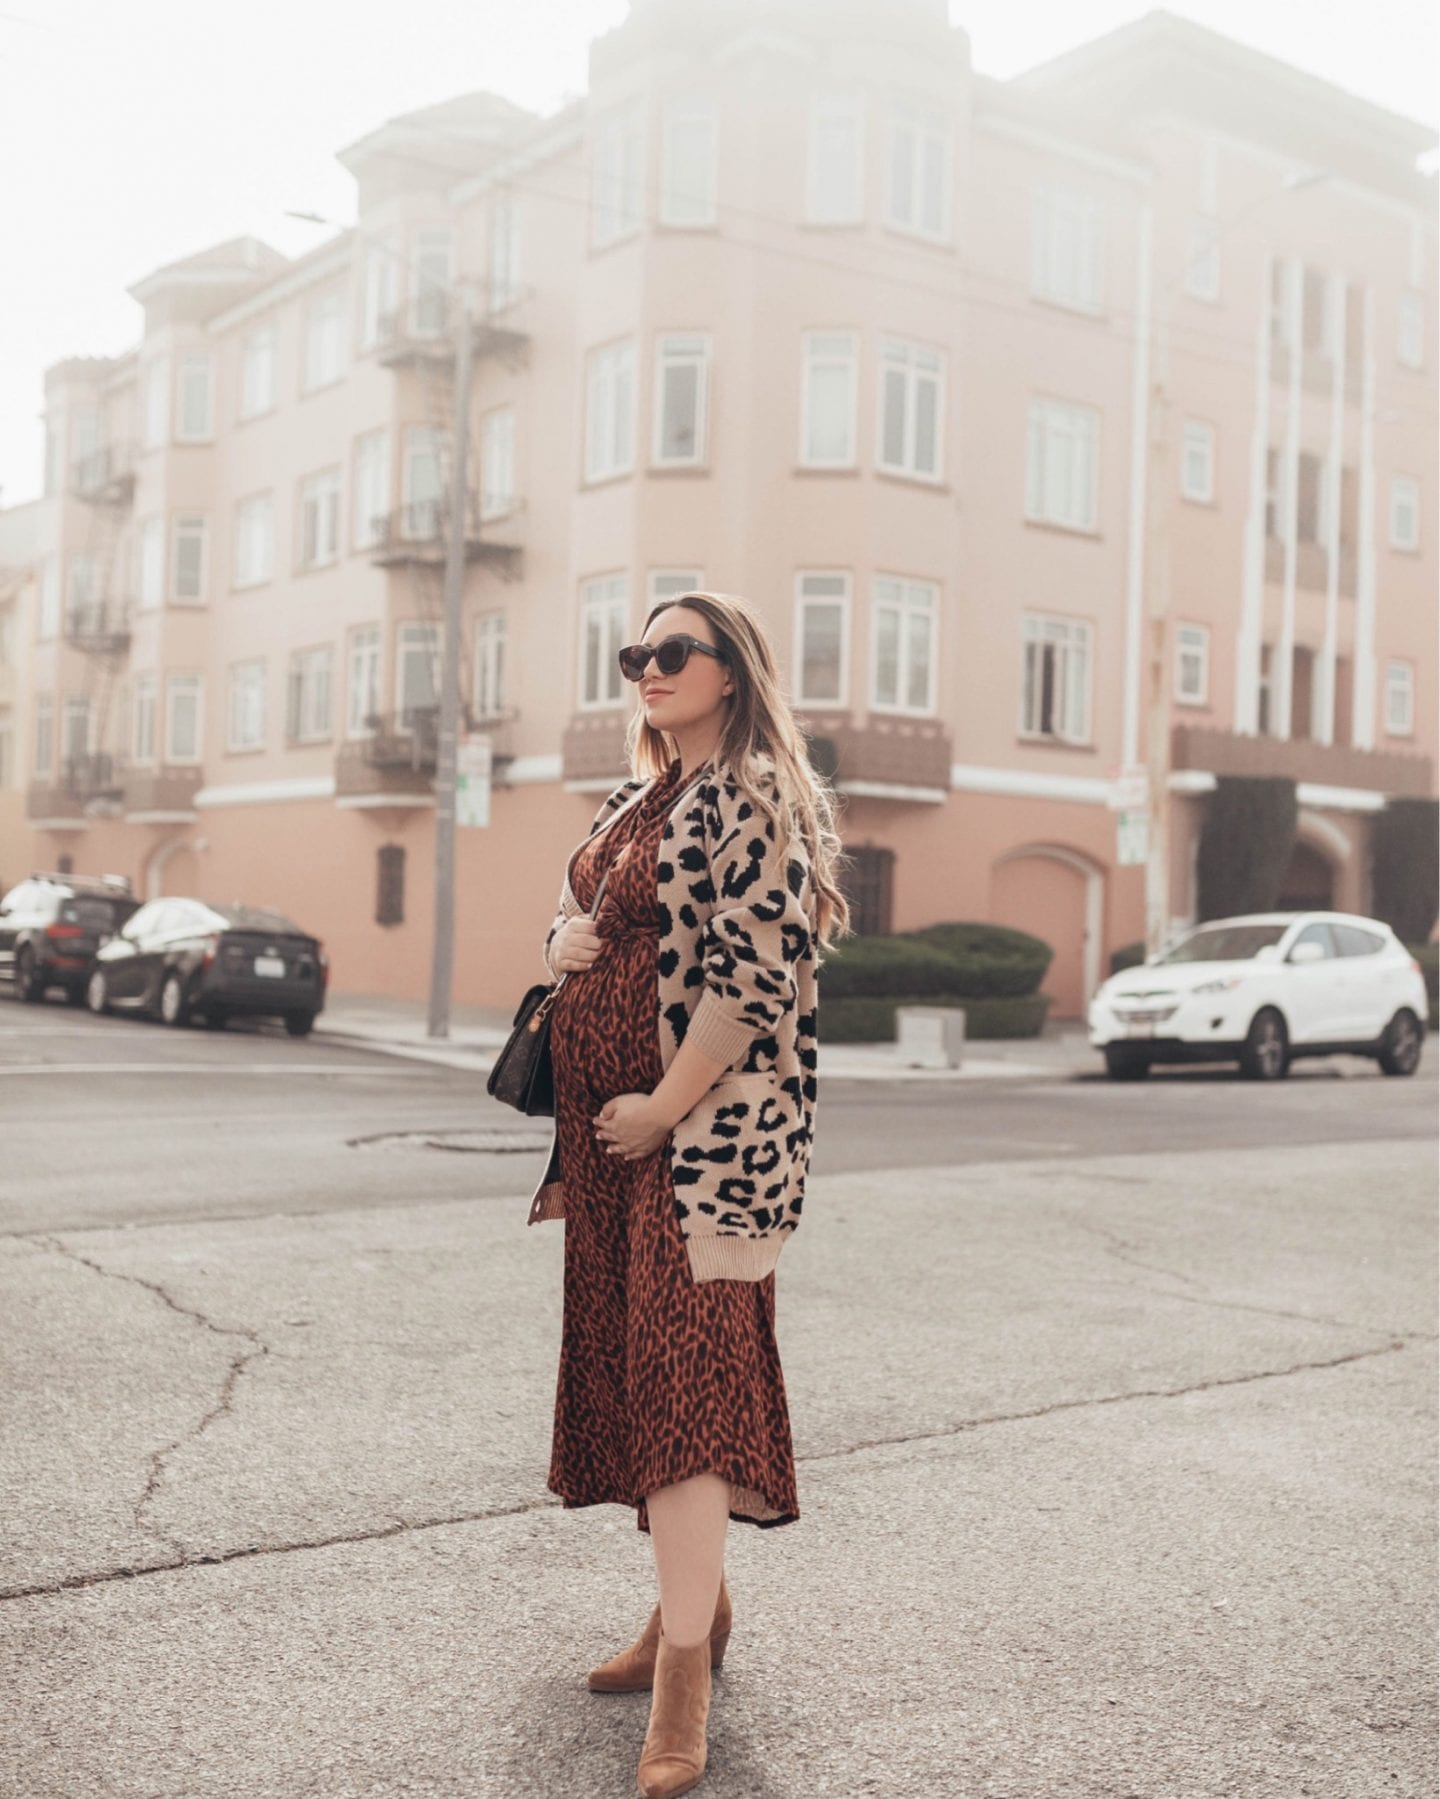 3rd trimester style | Maternity Style for Each Trimester by popular California fashion blog, Just Add Glam: image of a woman wearing a Amazon Angashion Women's Long Sleeves Leopard Print Knitting Cardigan and ASOS Maternity cowl neck tie waist midi dress in tortoiseshell print.